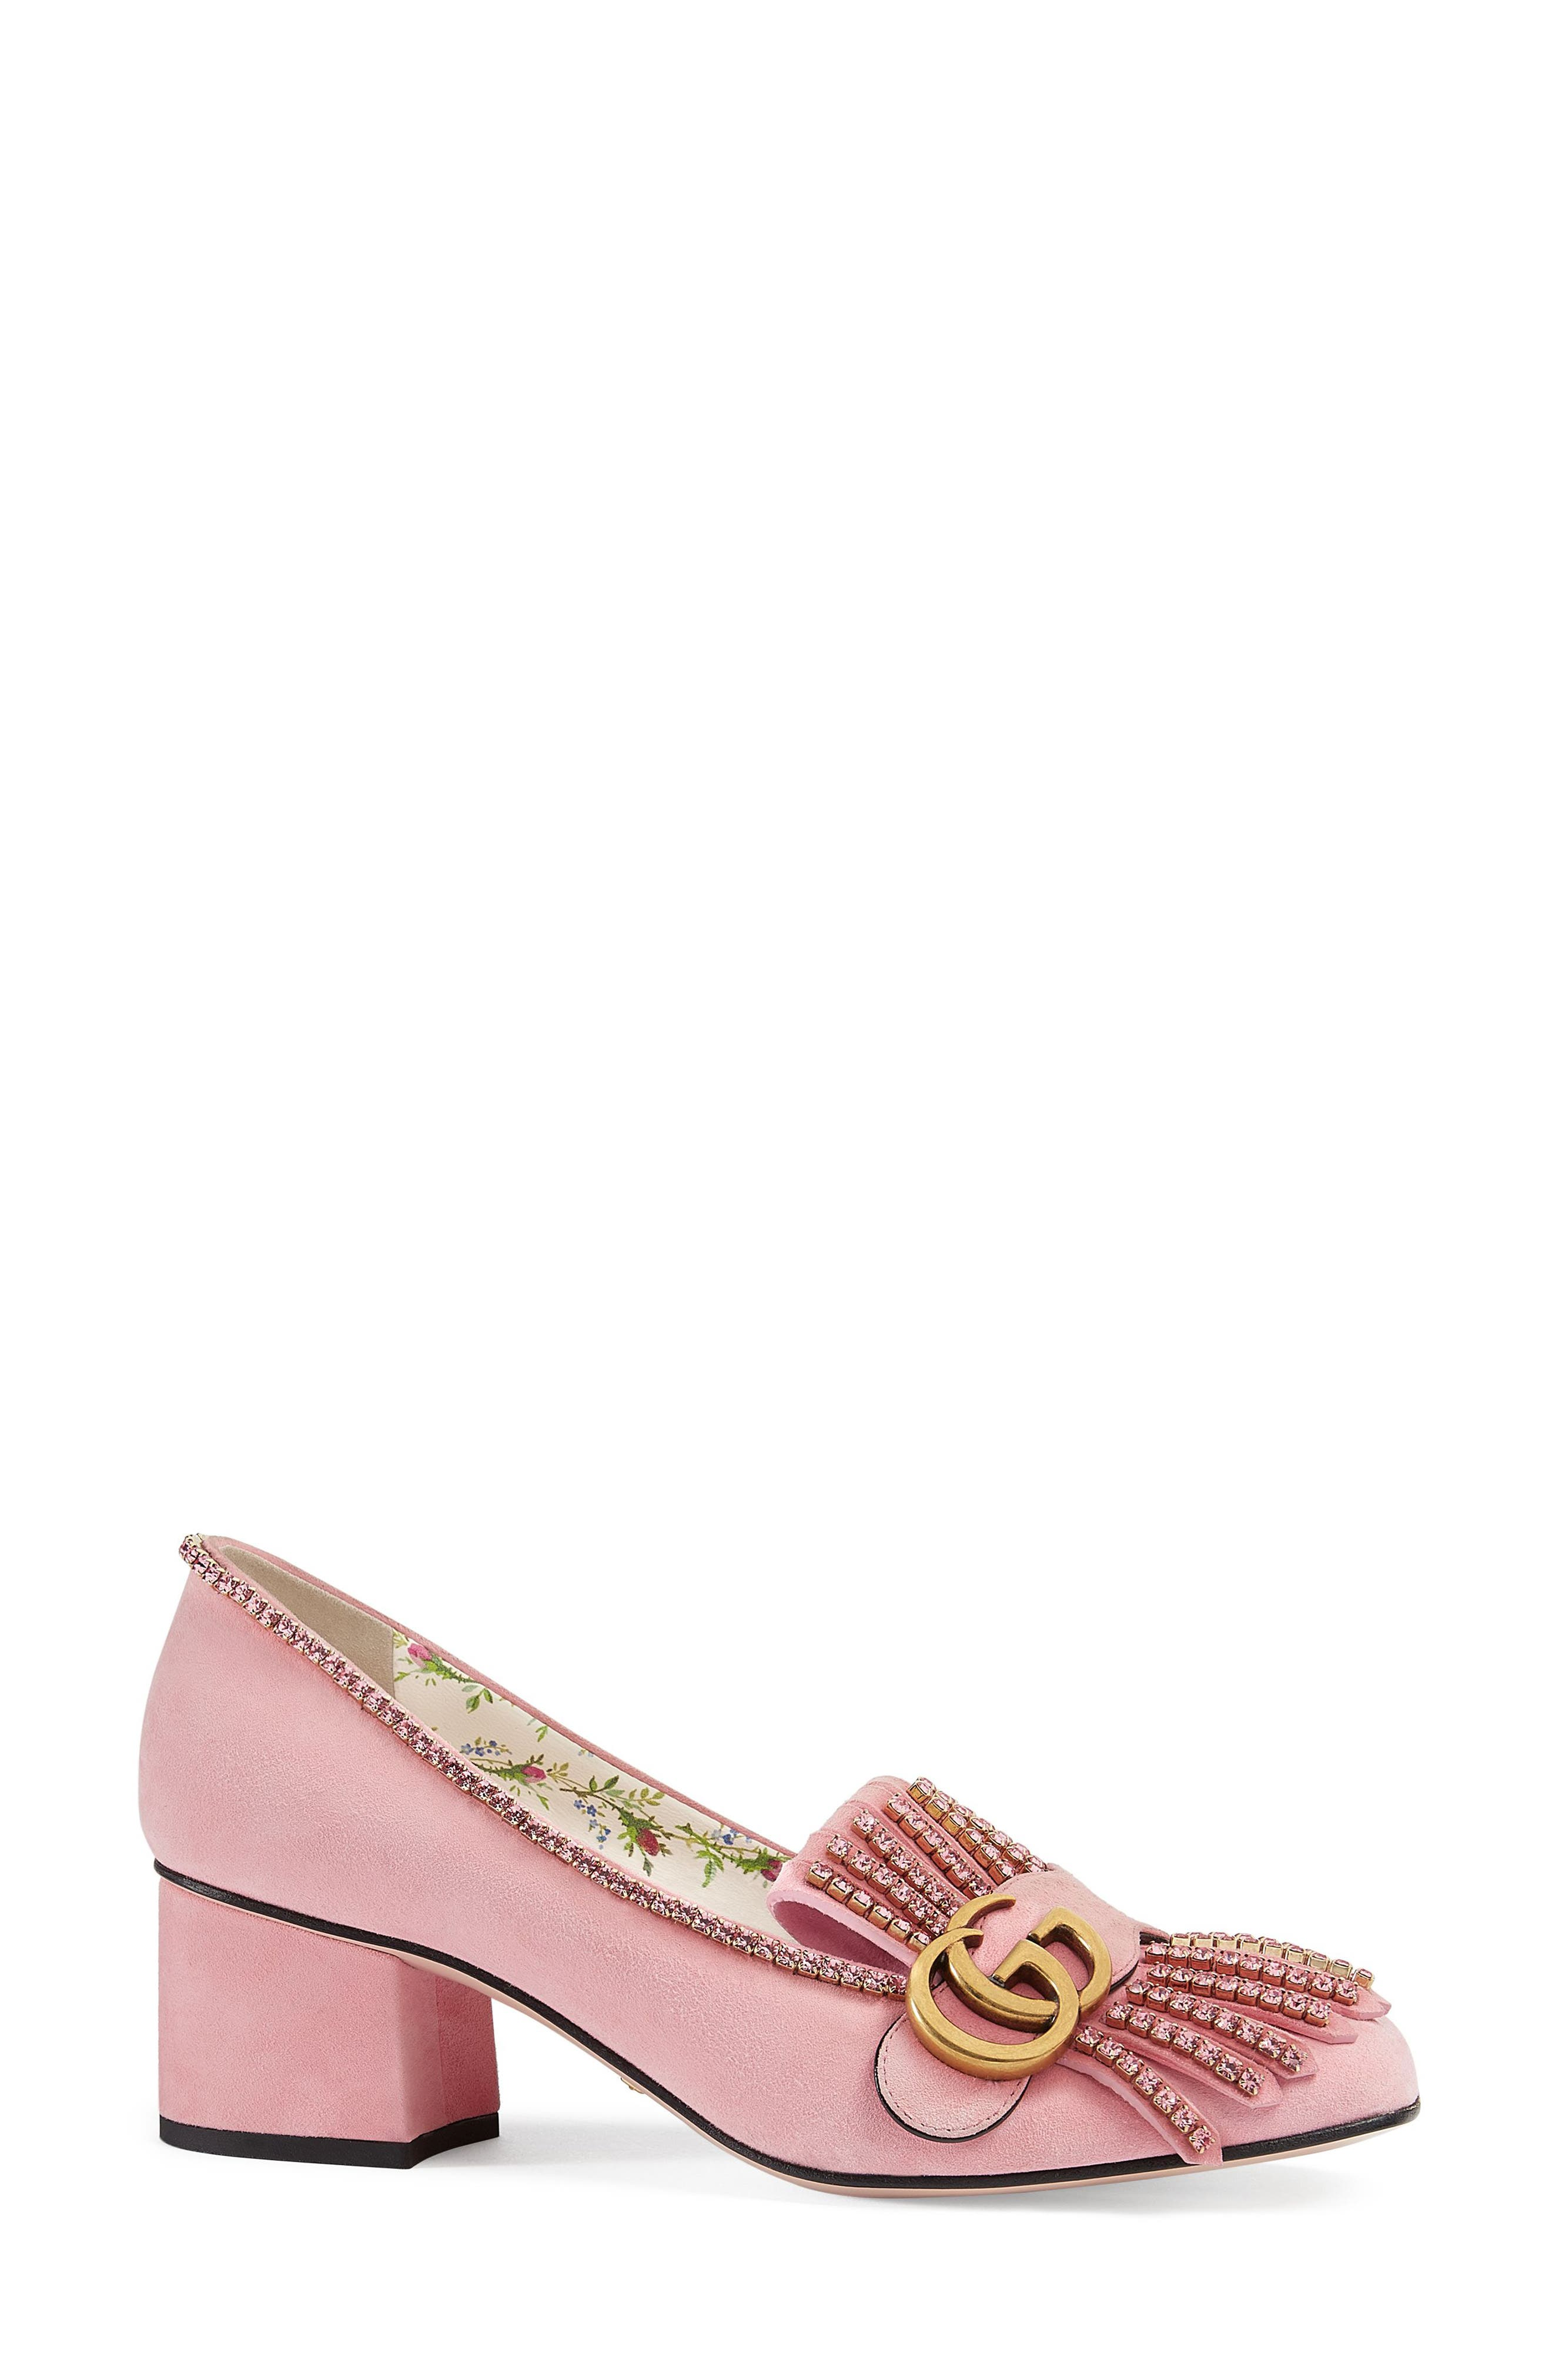 GG Marmont Crystal Embellished Pump,                             Main thumbnail 1, color,                             664